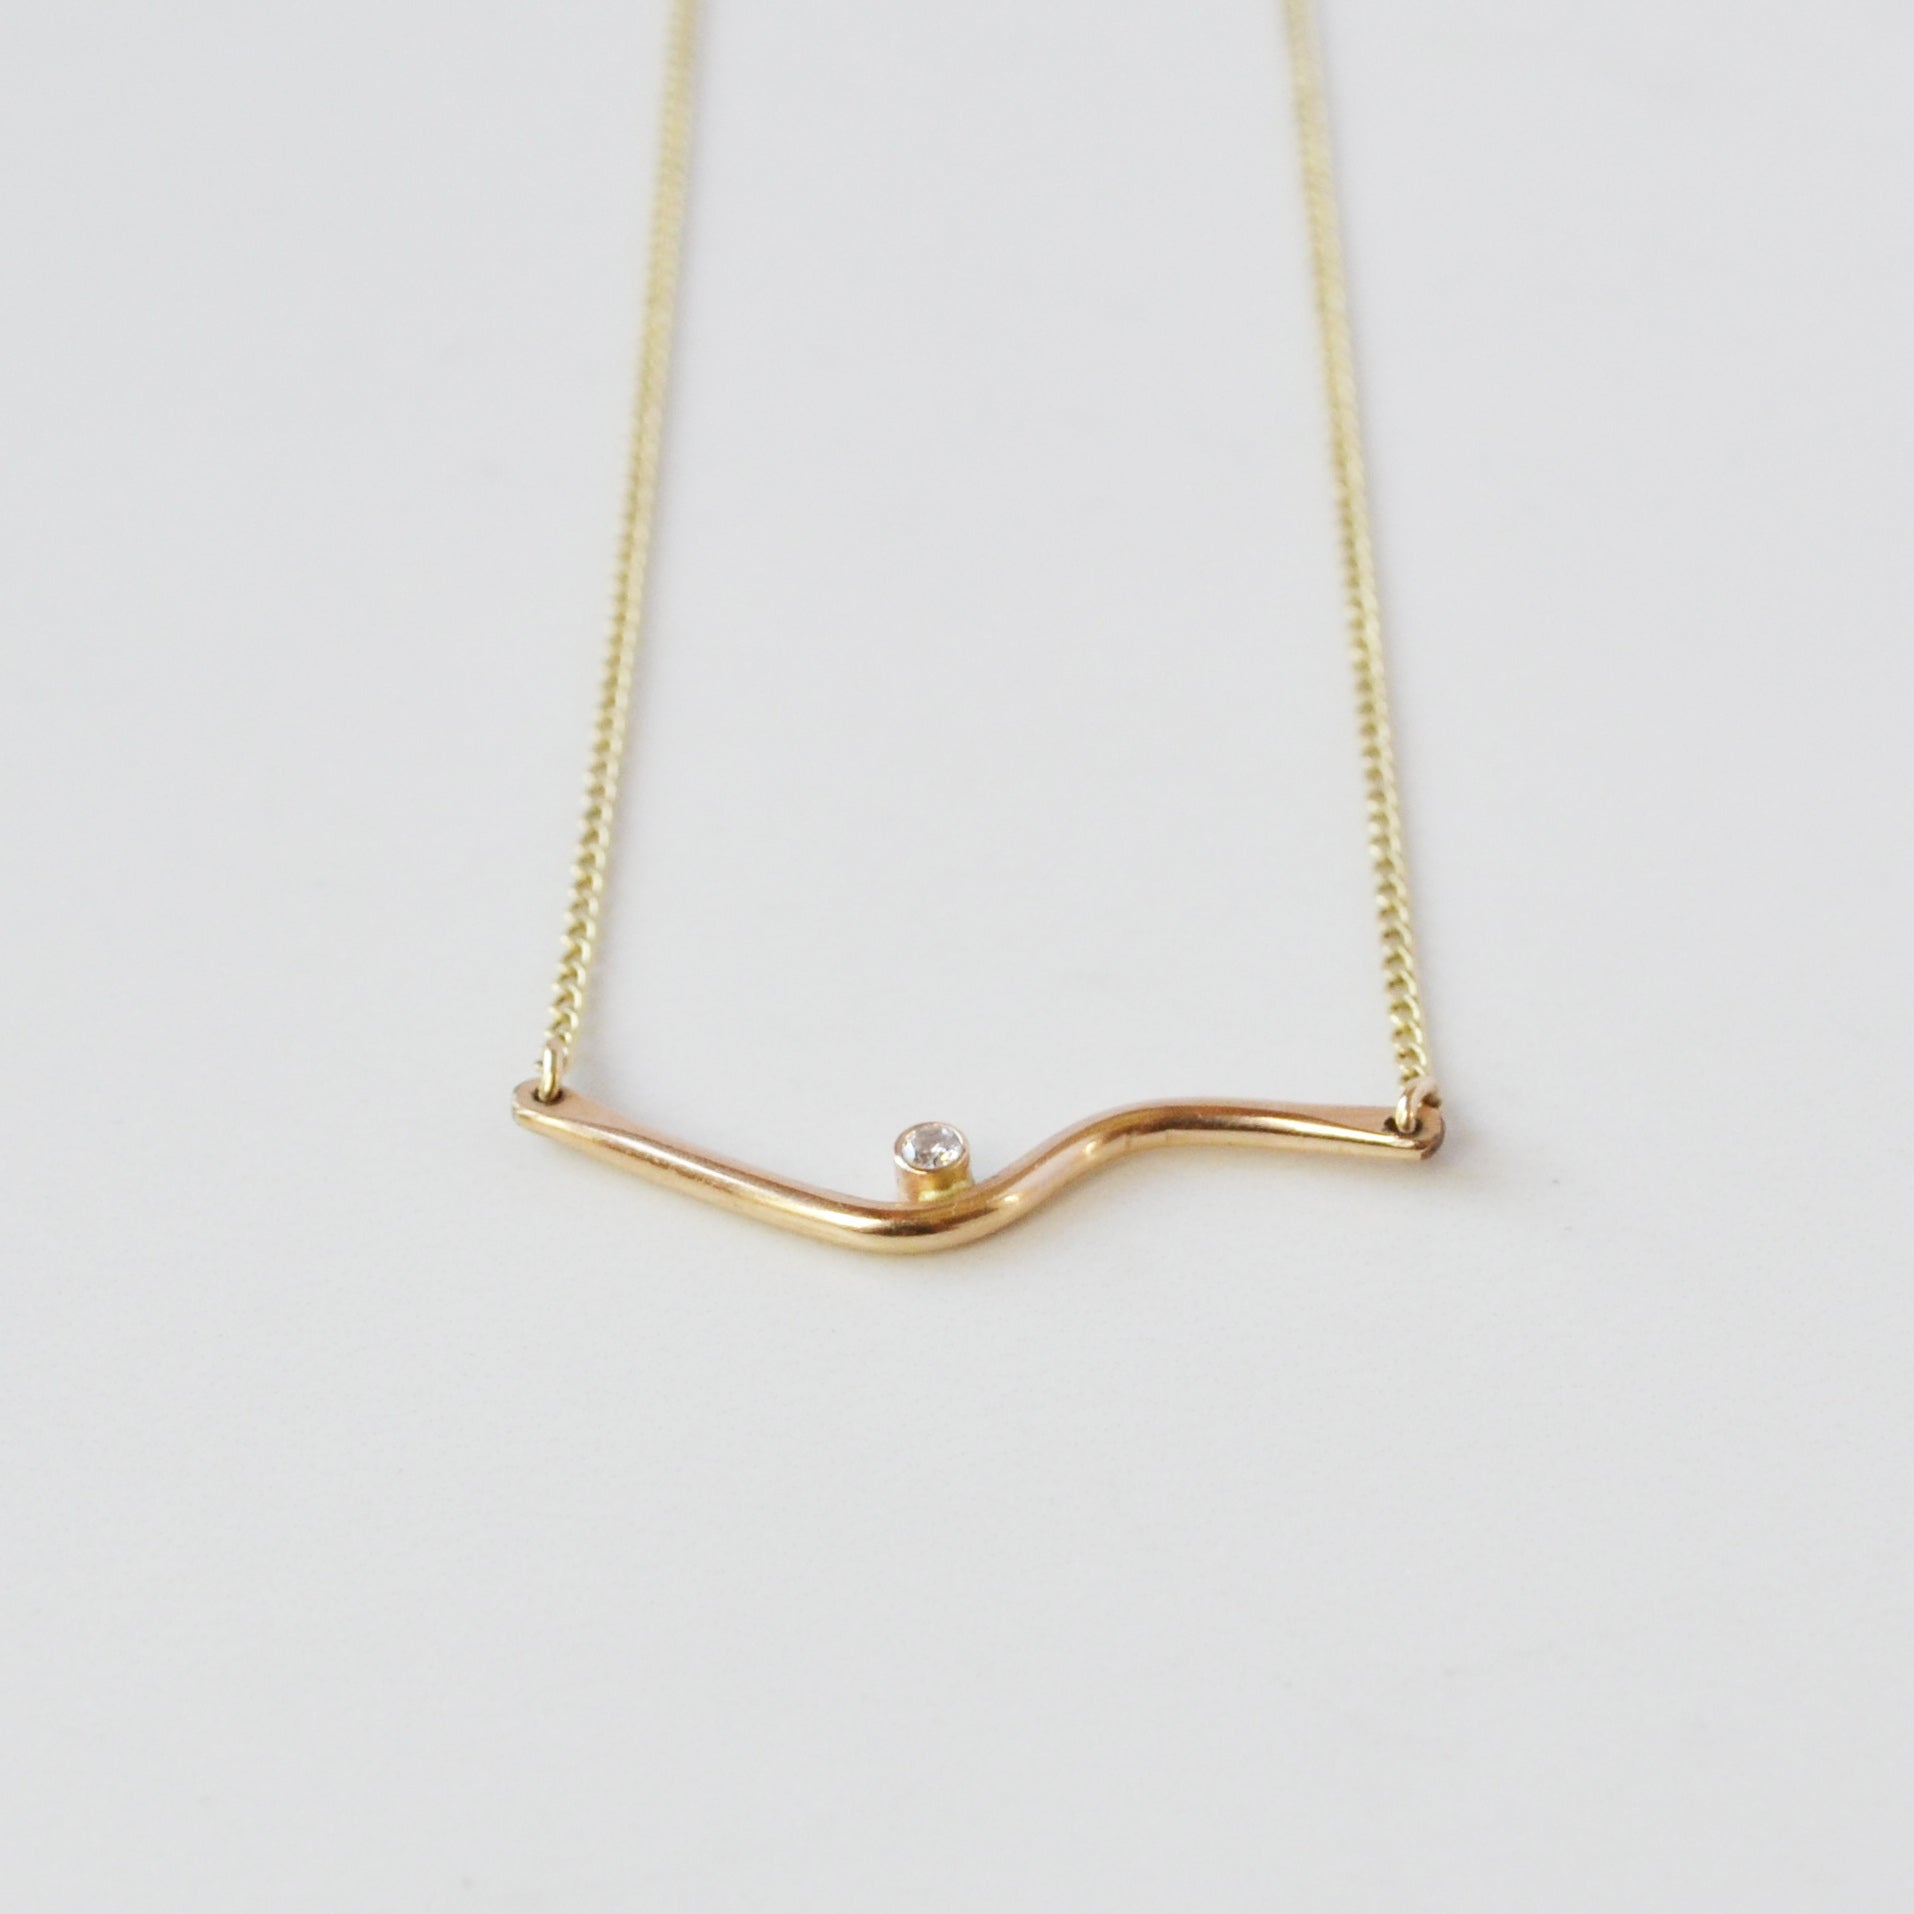 Easy Rider Necklace Gold or Silver